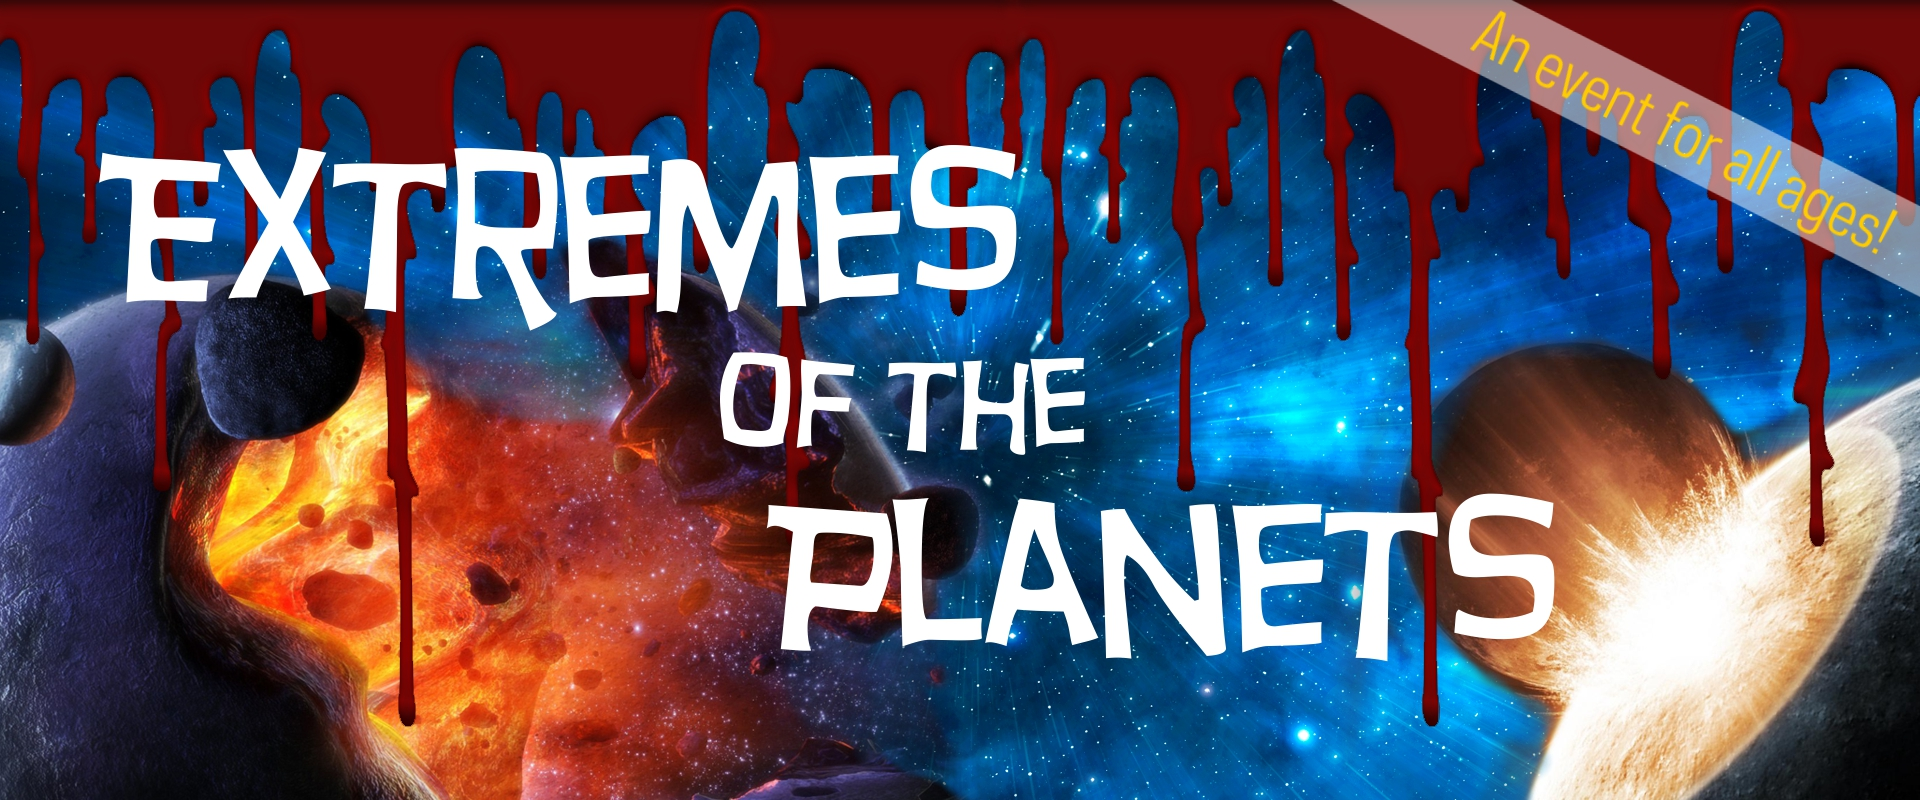 Extremes of the Planets (An event for all ages!)